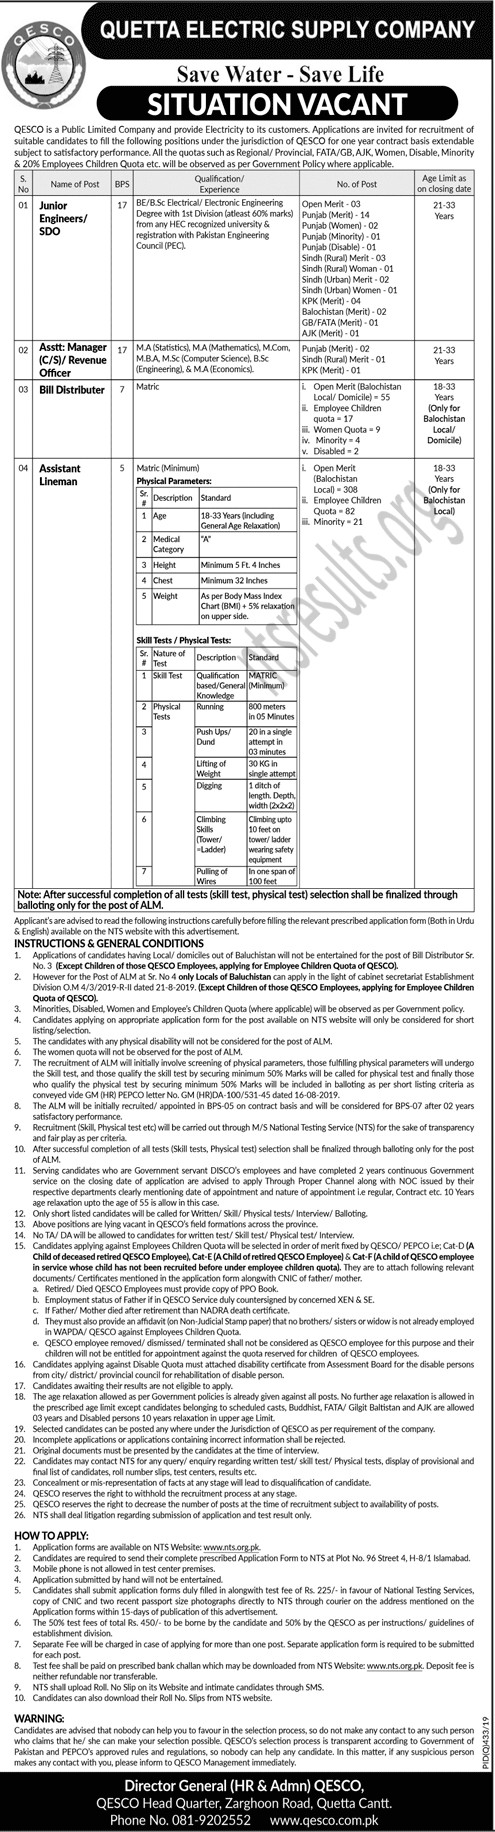 Quetta electric supply company QESCO Jobs Via NTS